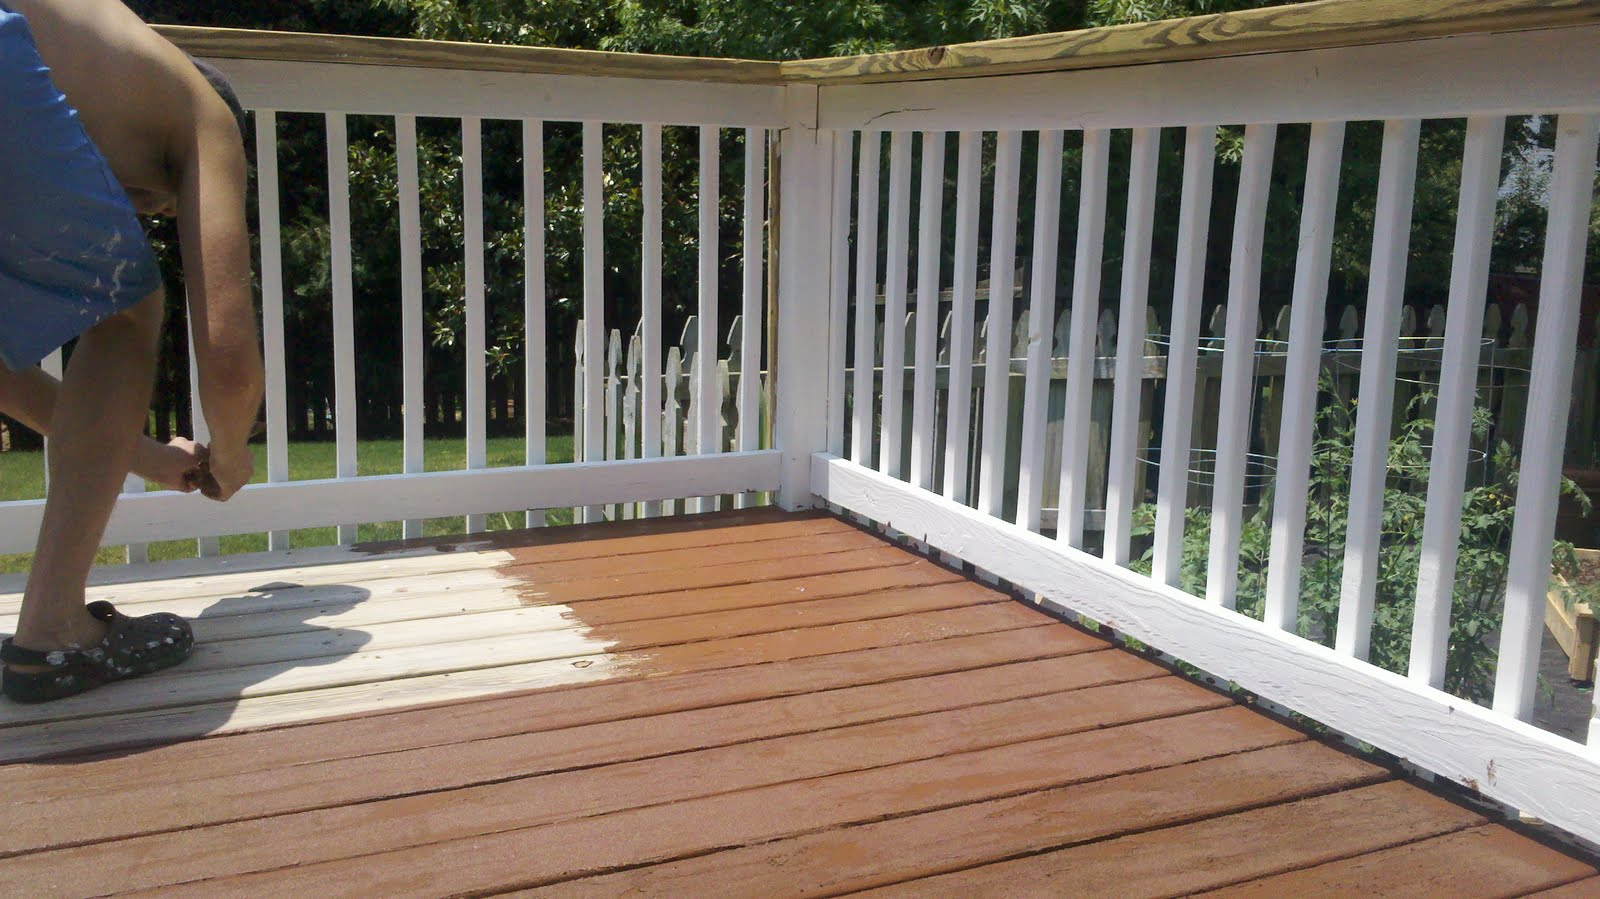 Teenxinfowpcontentuploadsdeckpaintcolors - Design a deck home depot